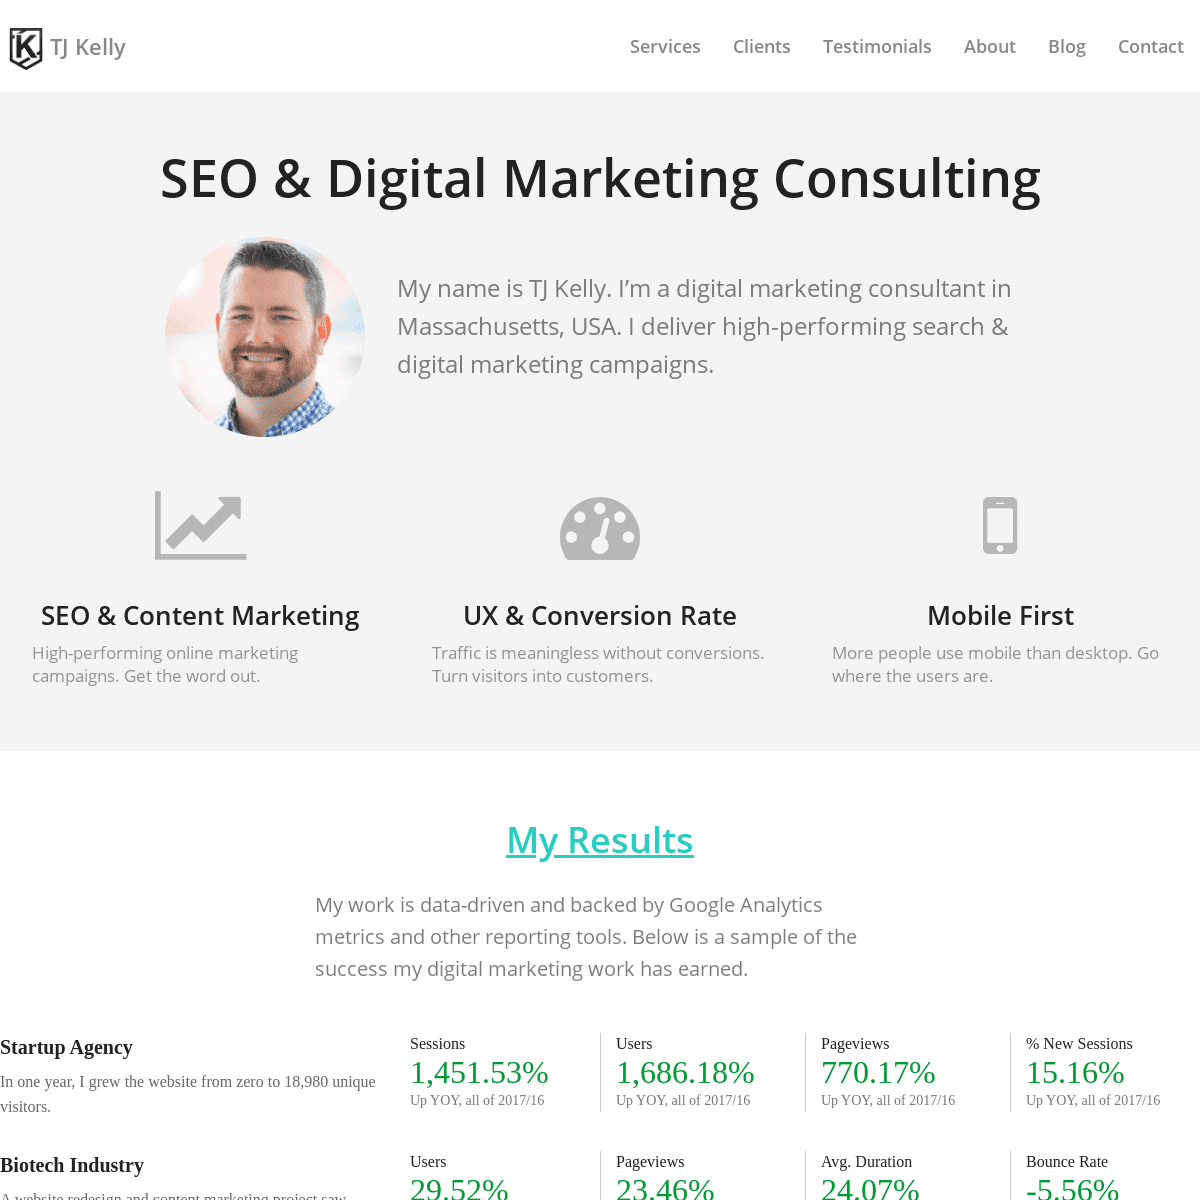 ArchiveBay.com - tjkelly.com - TJ Kelly - SEO & Online Marketing Consulting - North Andover, MA